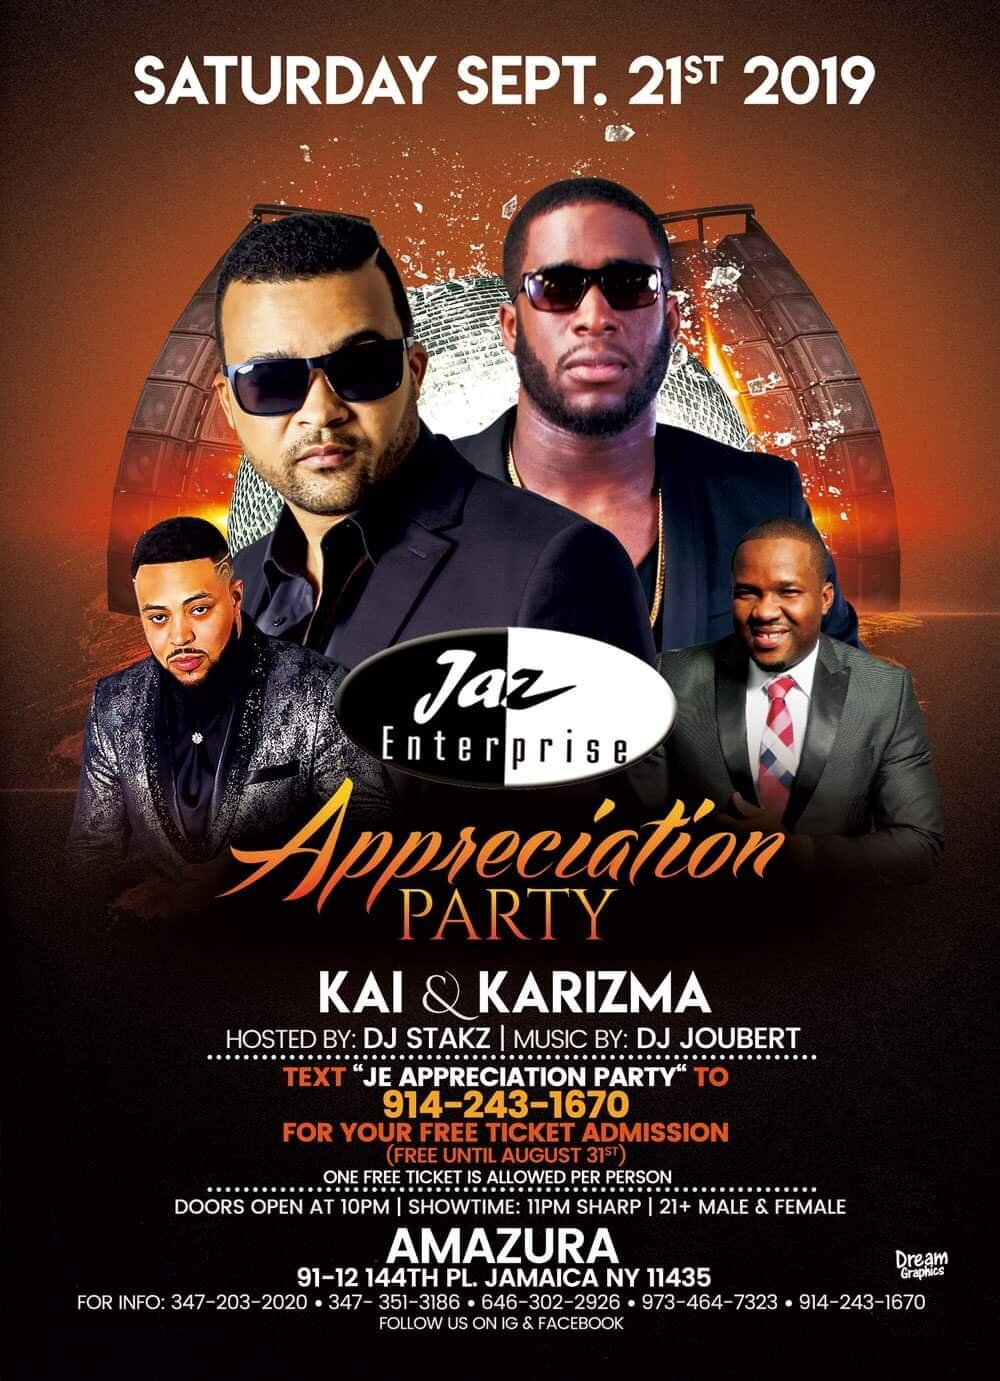 Jaz Enterprise Appreciation Day - DJ Stakz - Sept 21.jpg